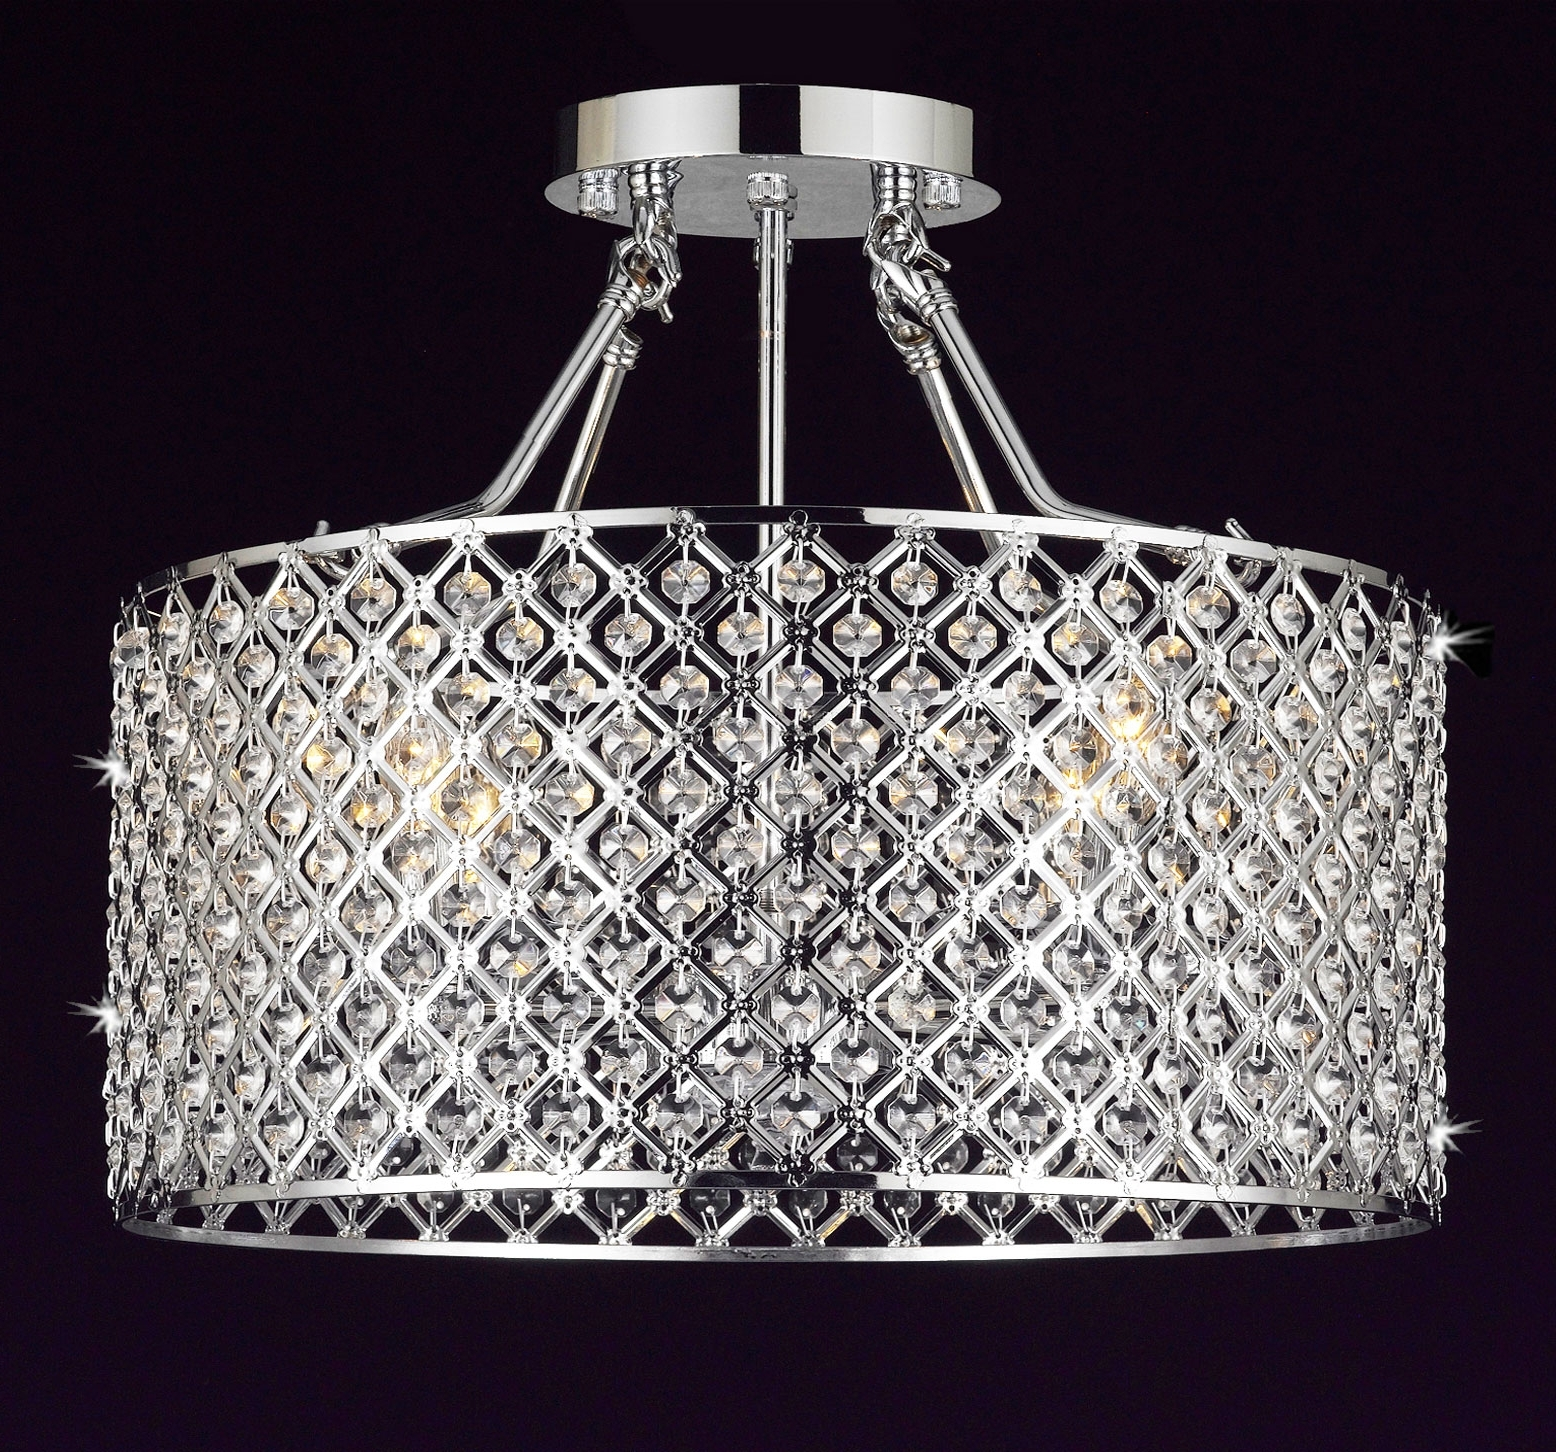 4 Light Chrome Crystal Chandeliers Throughout Most Recently Released G7 B12/white/2130/4 Gallery Chandeliers Flushmount 4 Light Chrome (View 14 of 15)